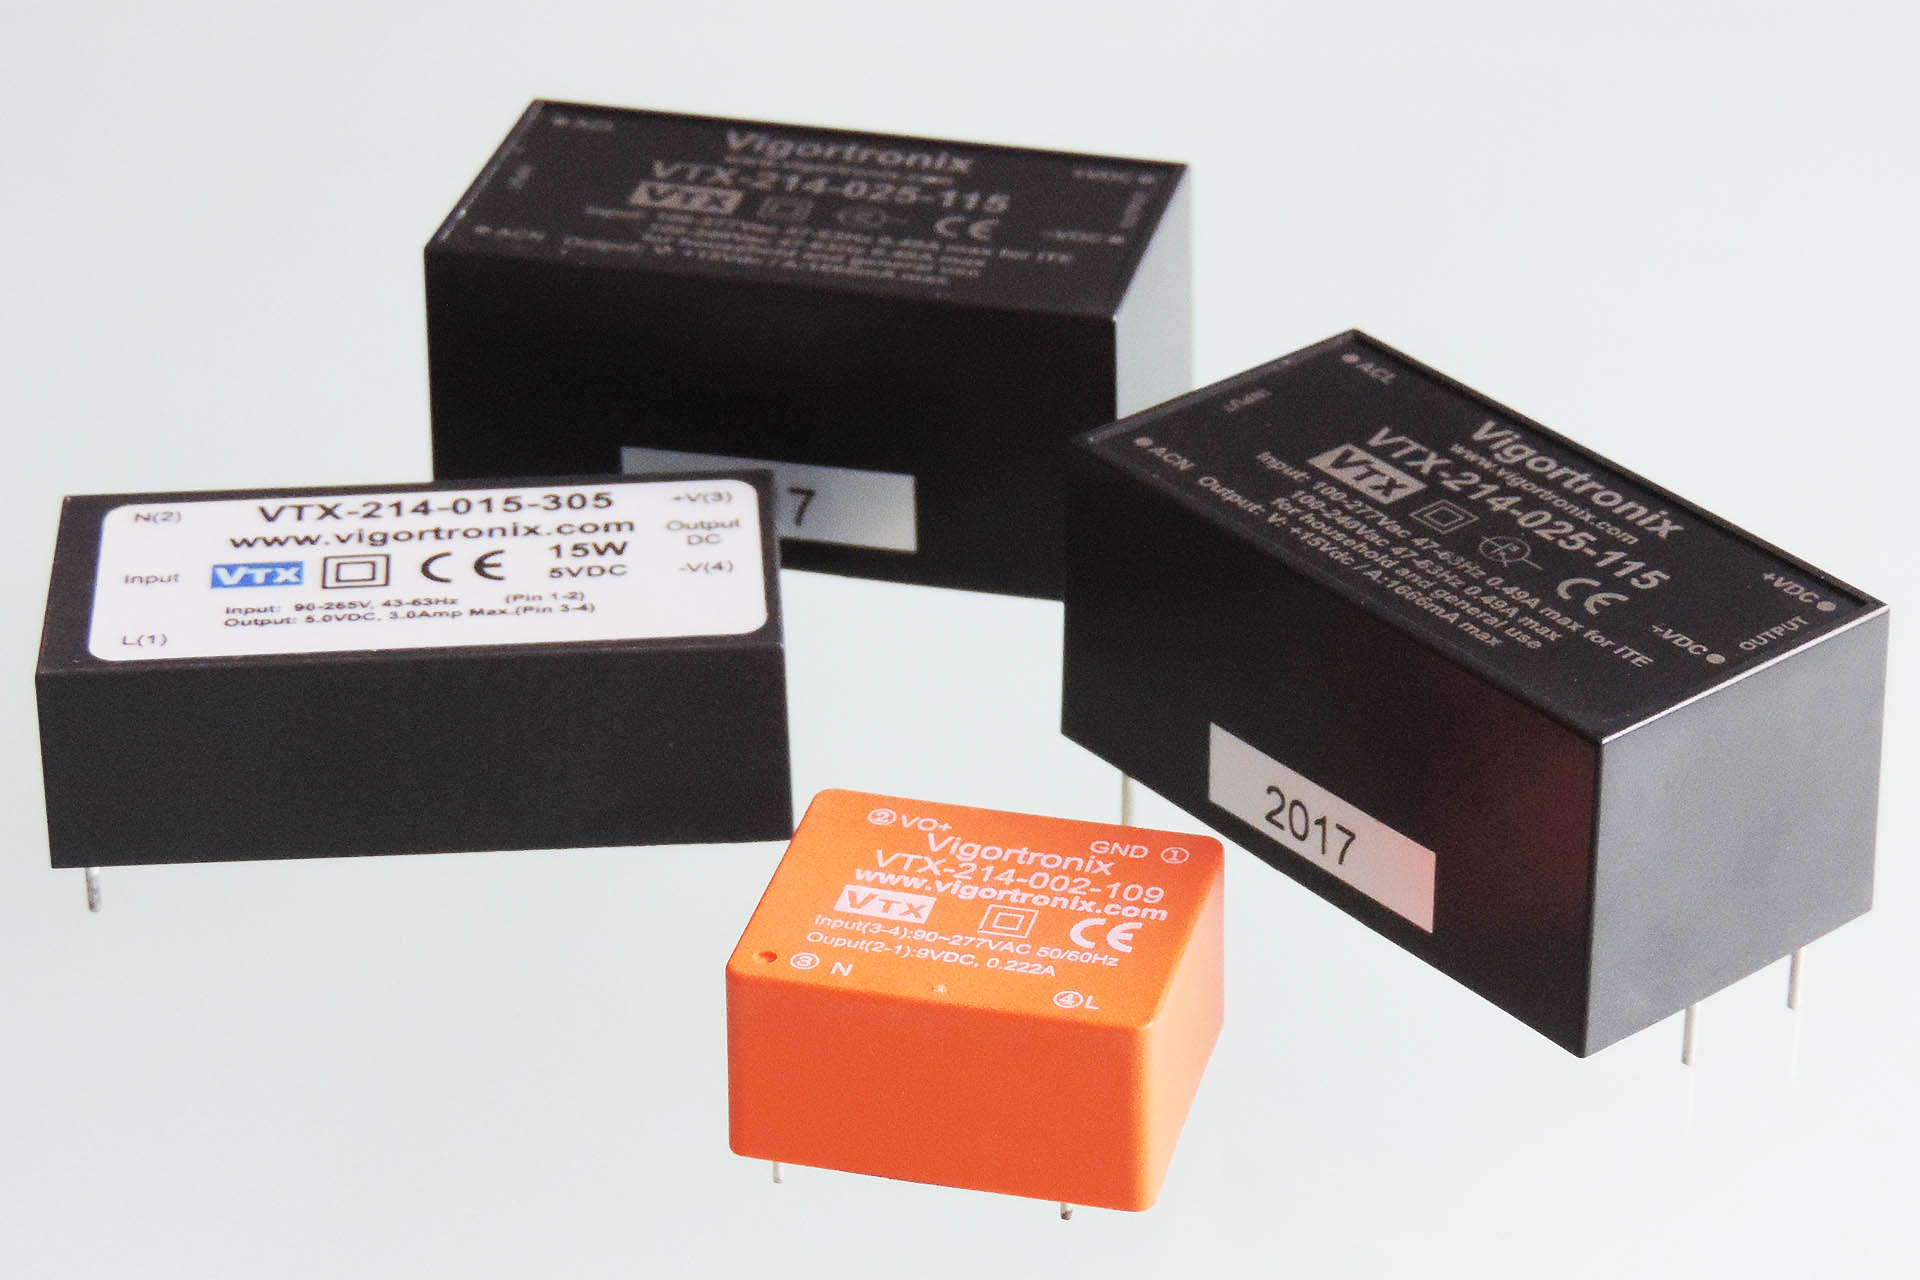 Vigortronic AC-DC converters used in the Aurora project